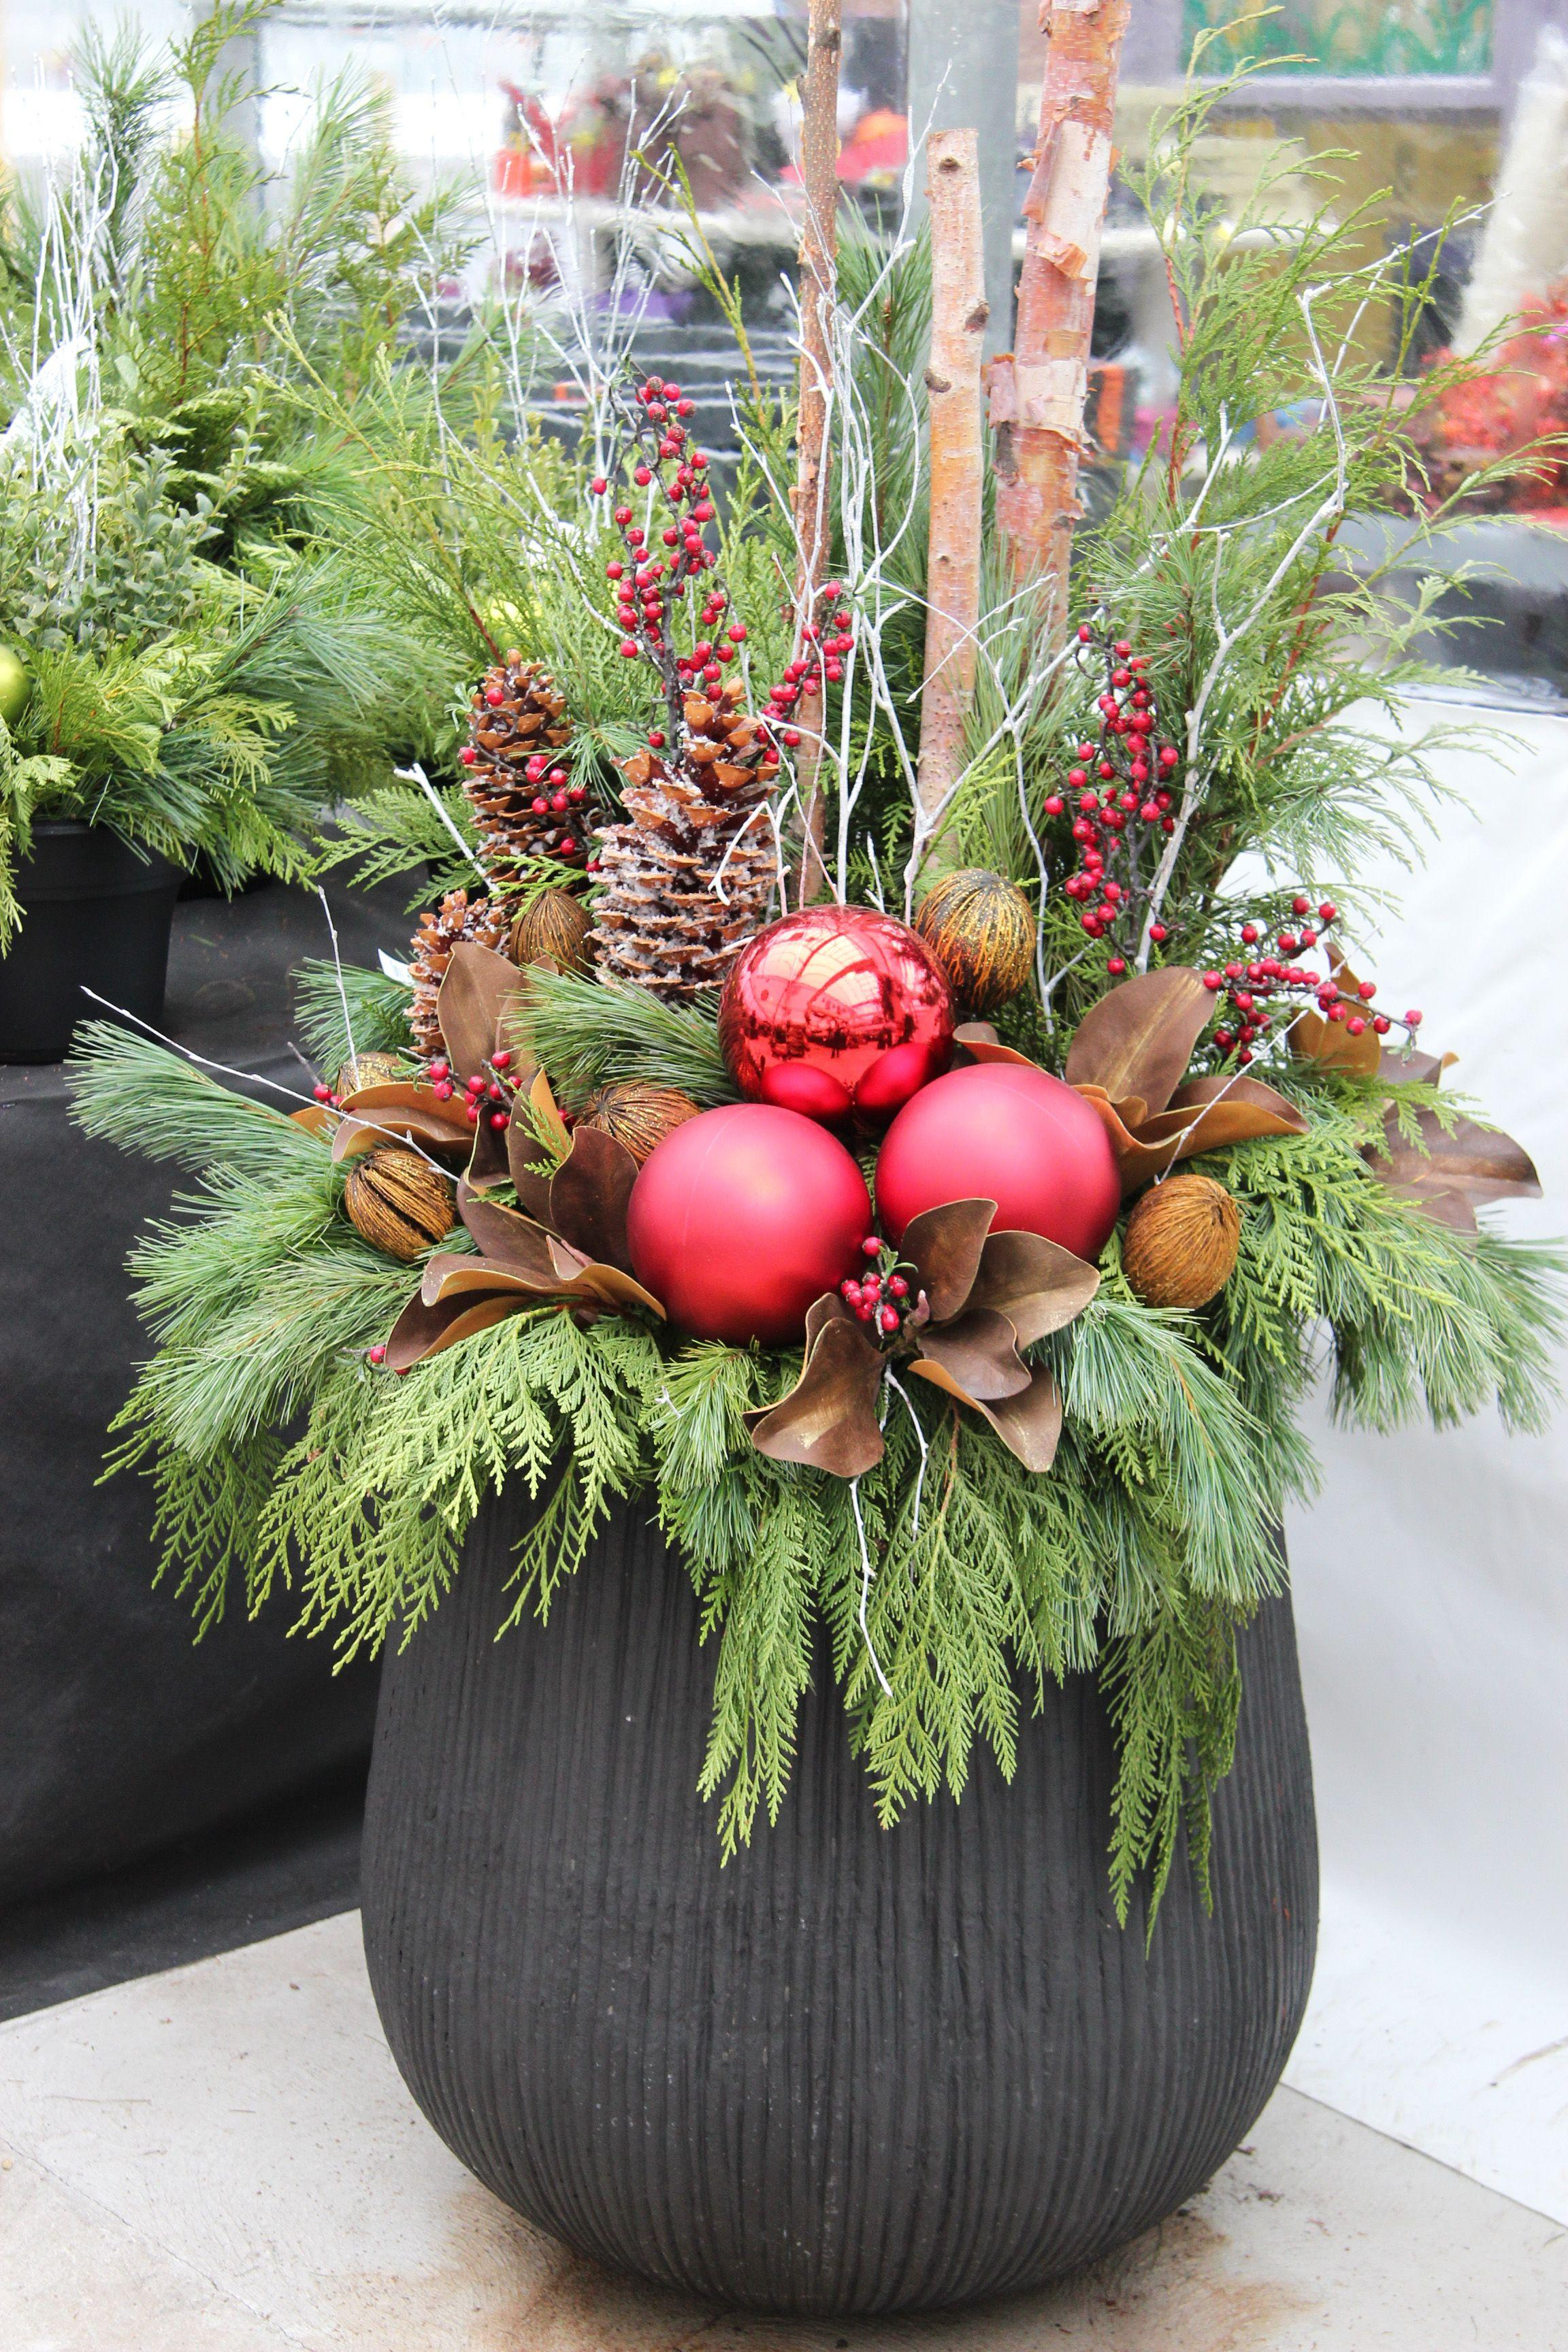 DIY Christmas Foliage Decor - RI Landscaper 855RILAWNS